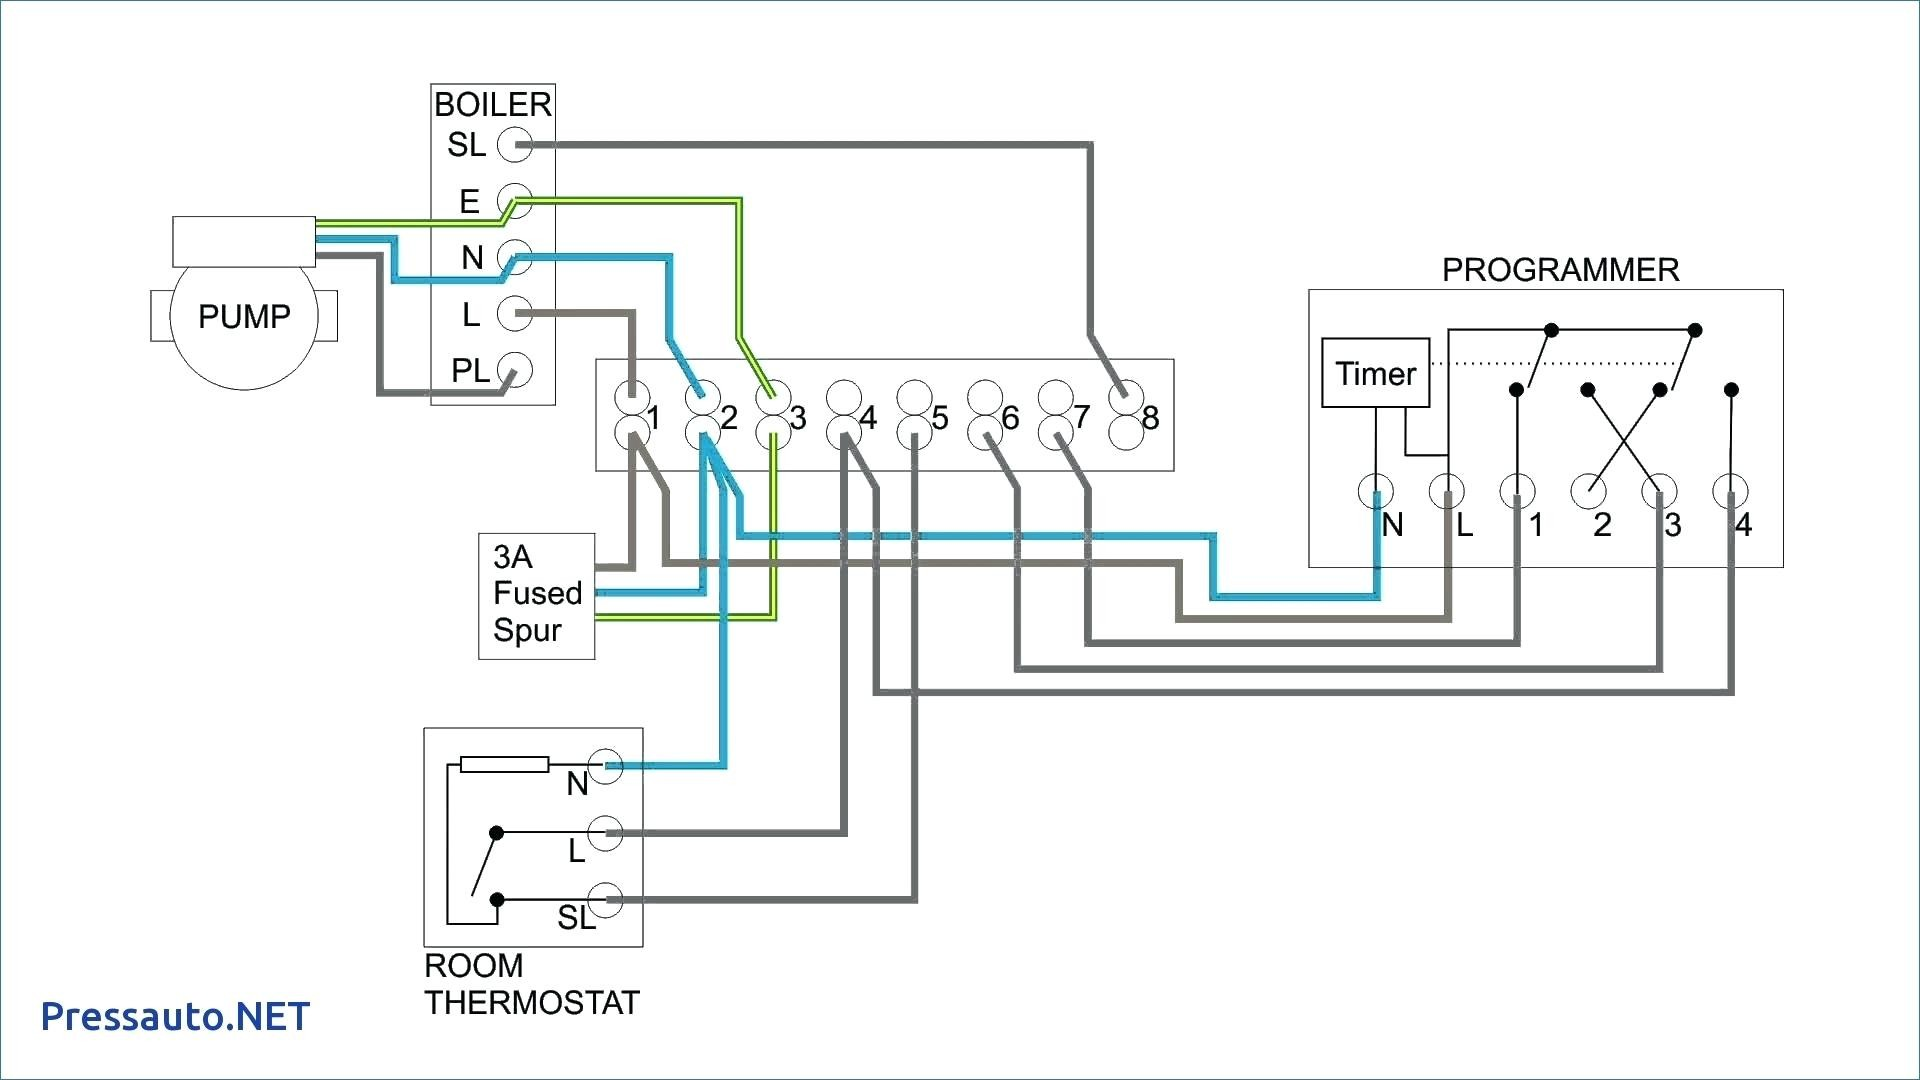 Nuheat home wiring diagram wiring diagrams schematics nuheat home thermostat wiring diagram wiring solutions nuheat home thermostat installation unique wiring diagram image nuheat home wiring diagram asfbconference2016 Image collections